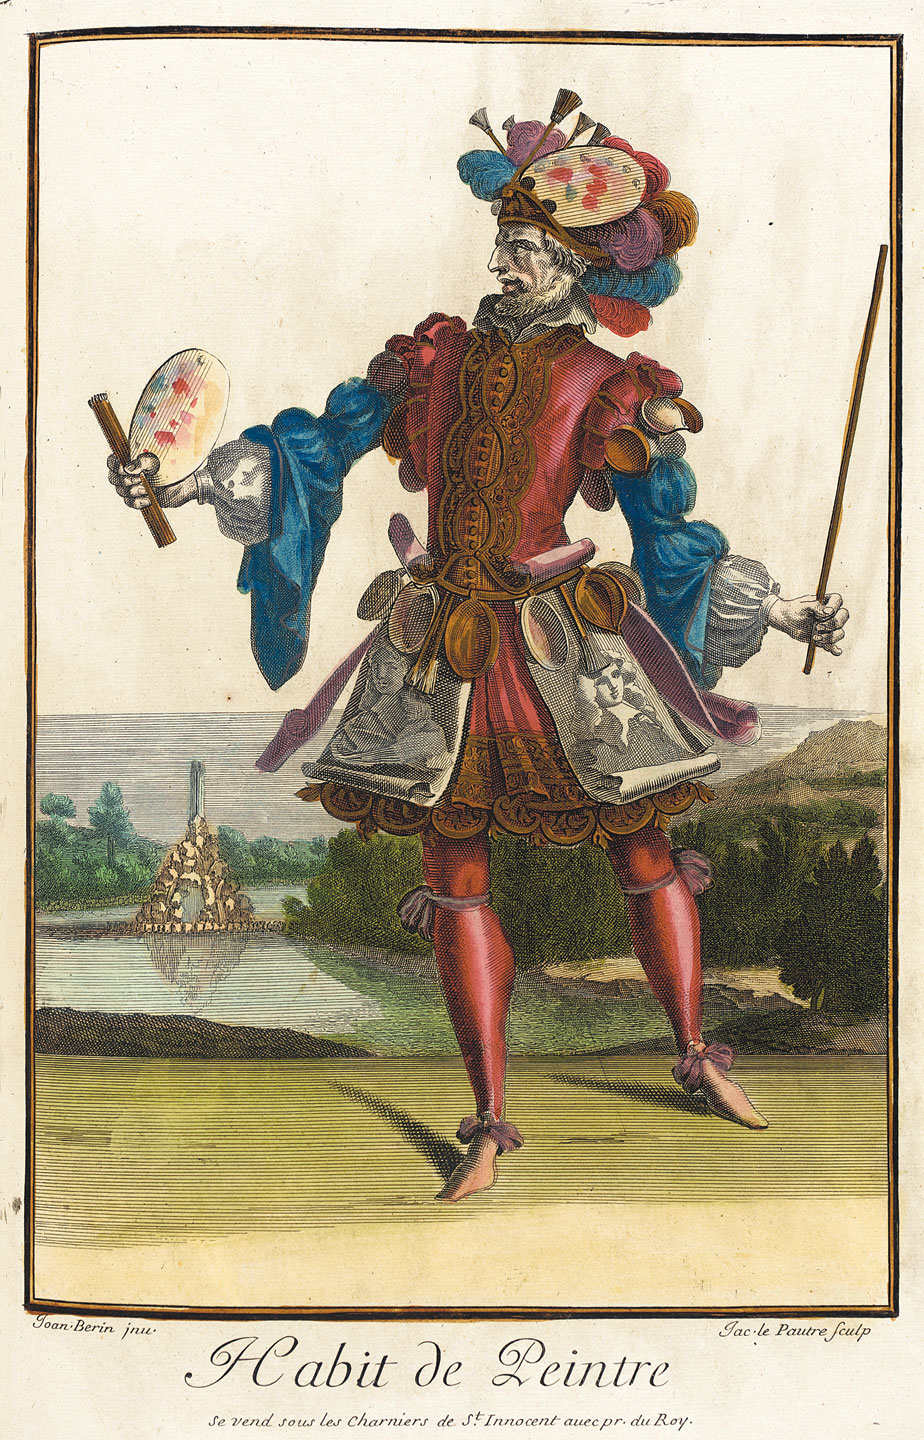 HABIT DE PEINTRE by Jean Lepautre, Jean Berain, Jacques Lepautre, French, of handcolored engraving on paper, circa 1682.  Courtesy of the Los Angeles County Museum of Art.